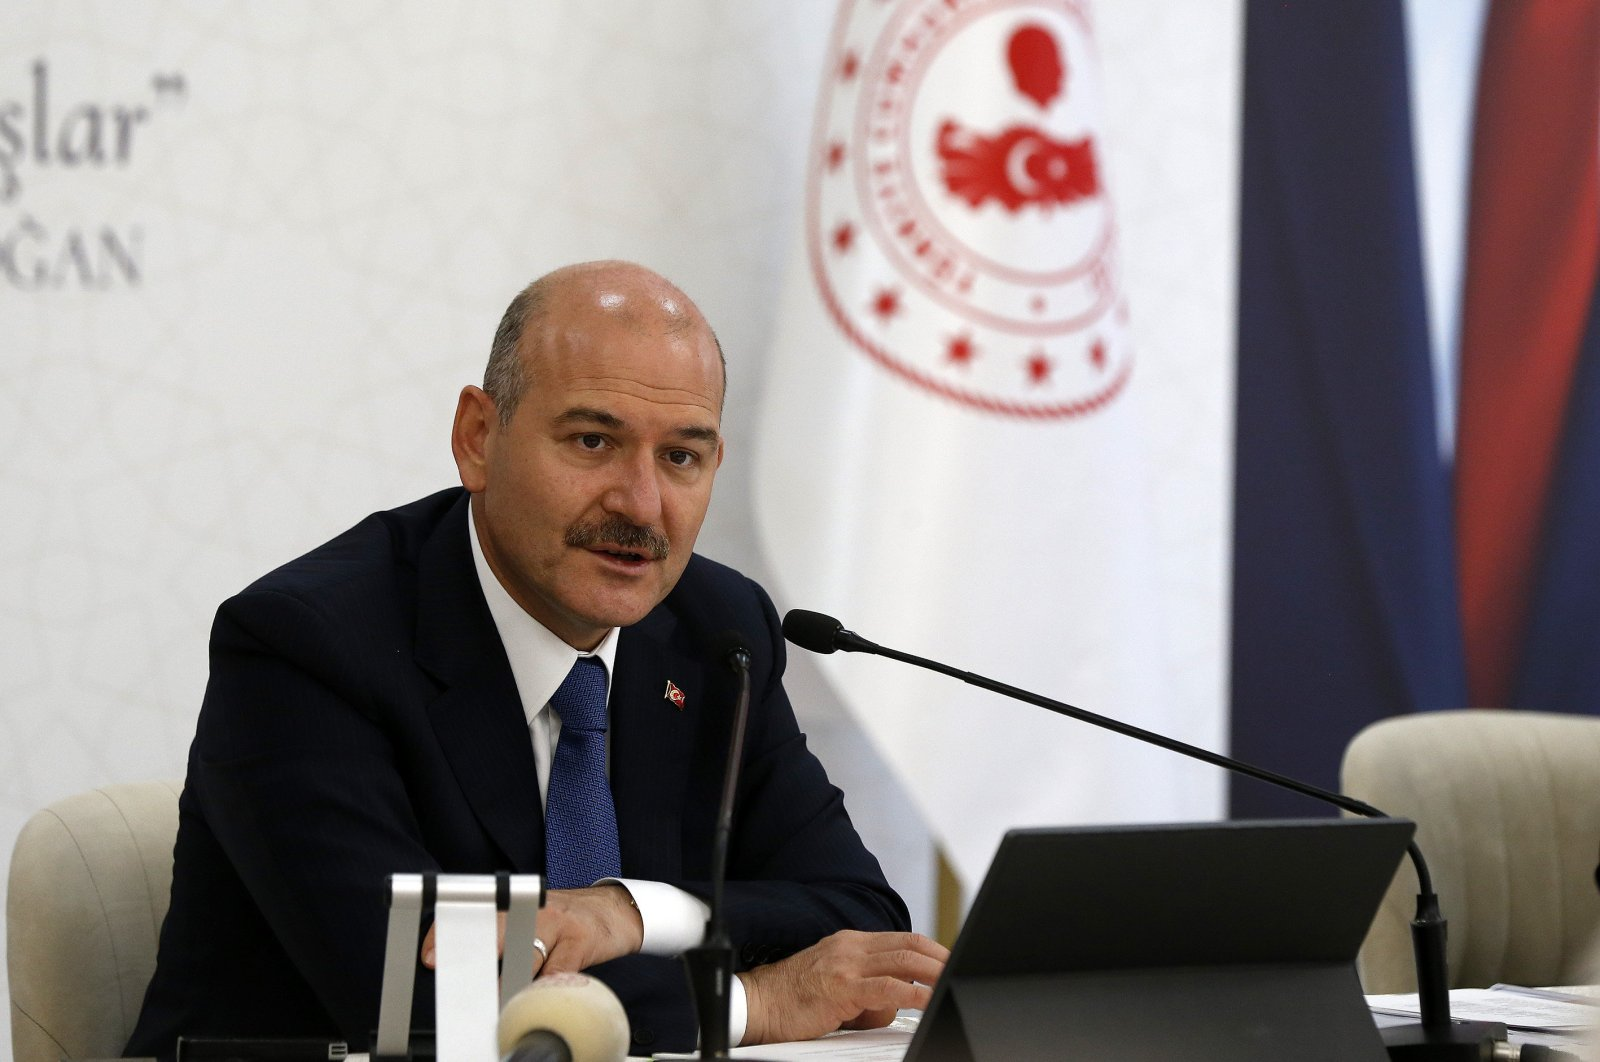 Interior Minister Süleyman Soylu speaks at an event in Ankara, Turkey, Oct. 20, 2020. (AA Photo)